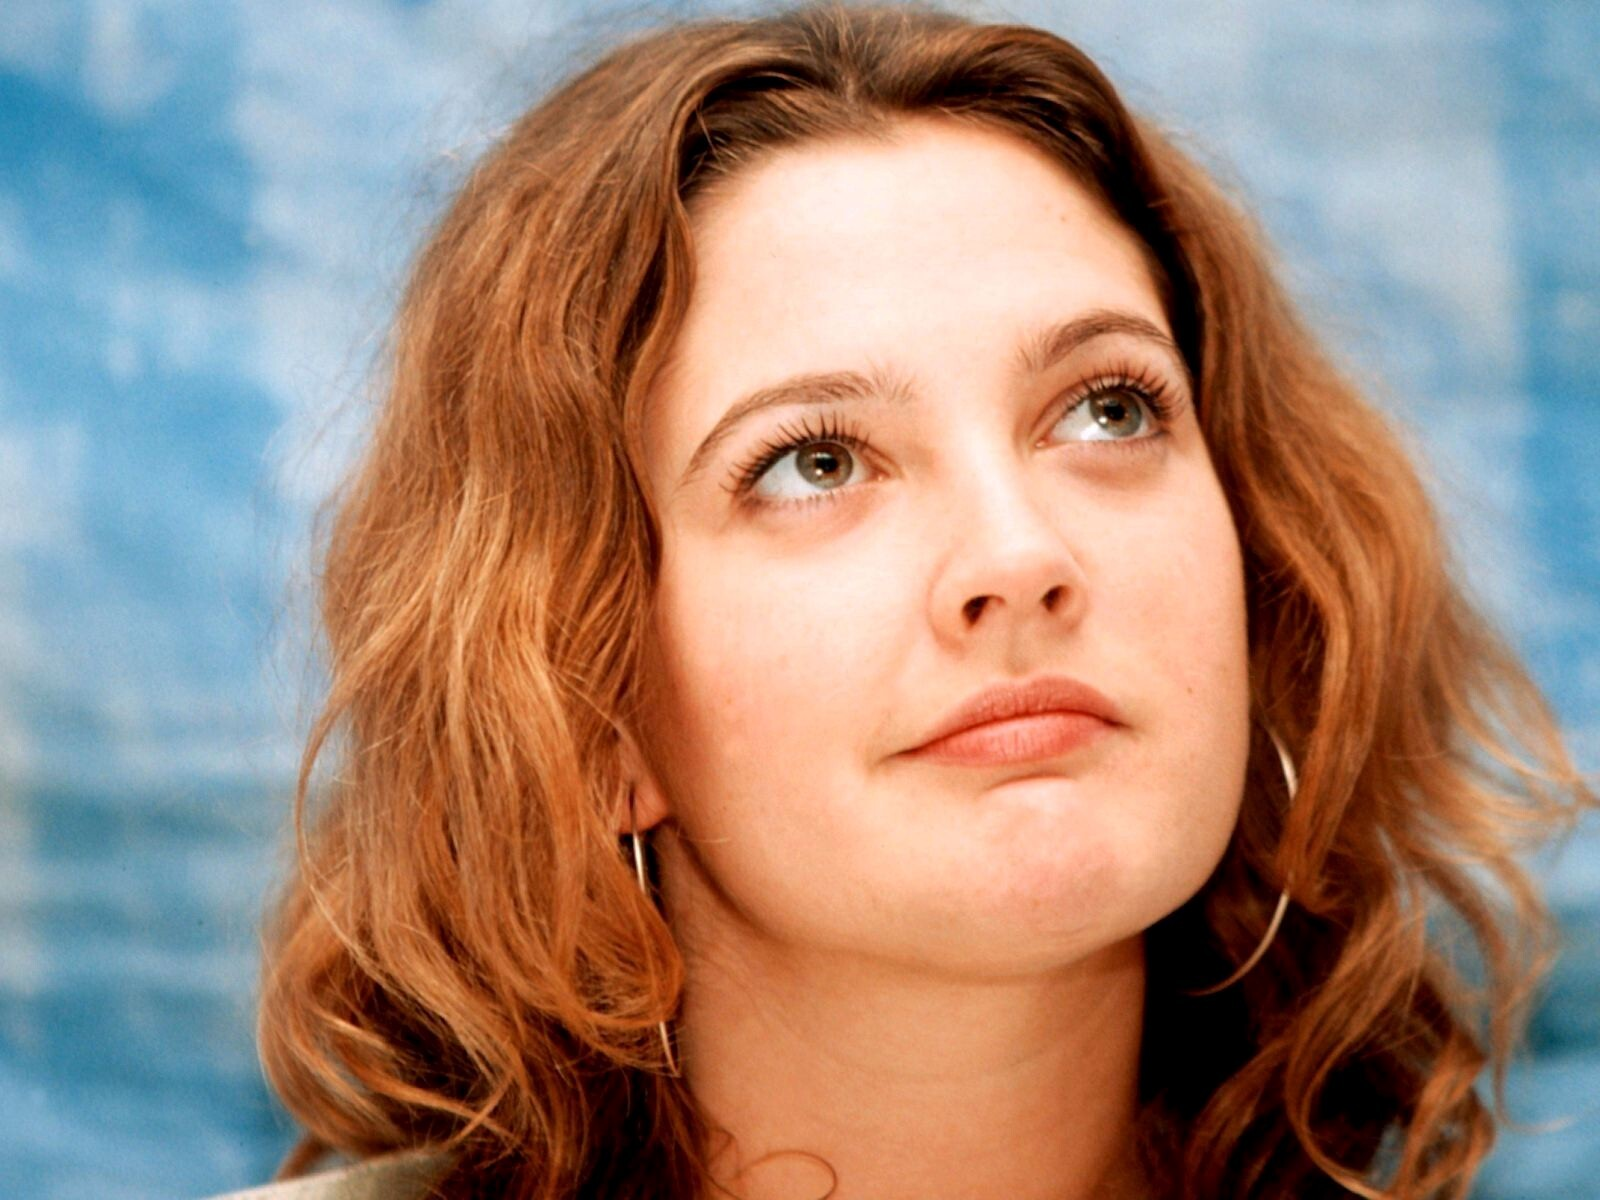 Cute Drew Barrymore Face Drew Barrymore